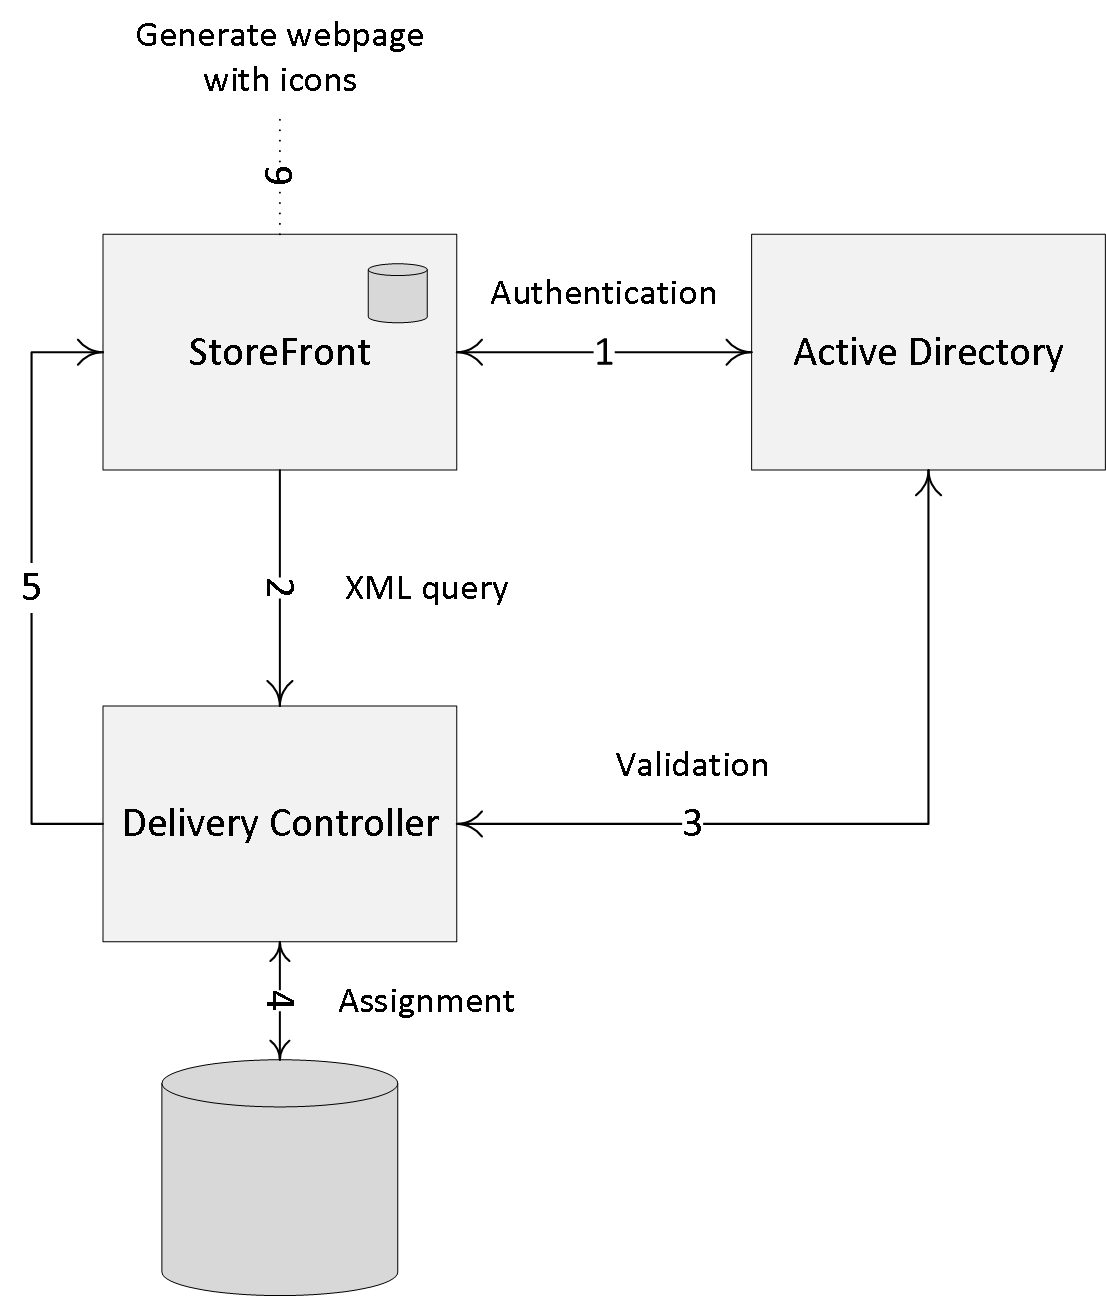 Inside Citrix chapter eight – The one with Storefront